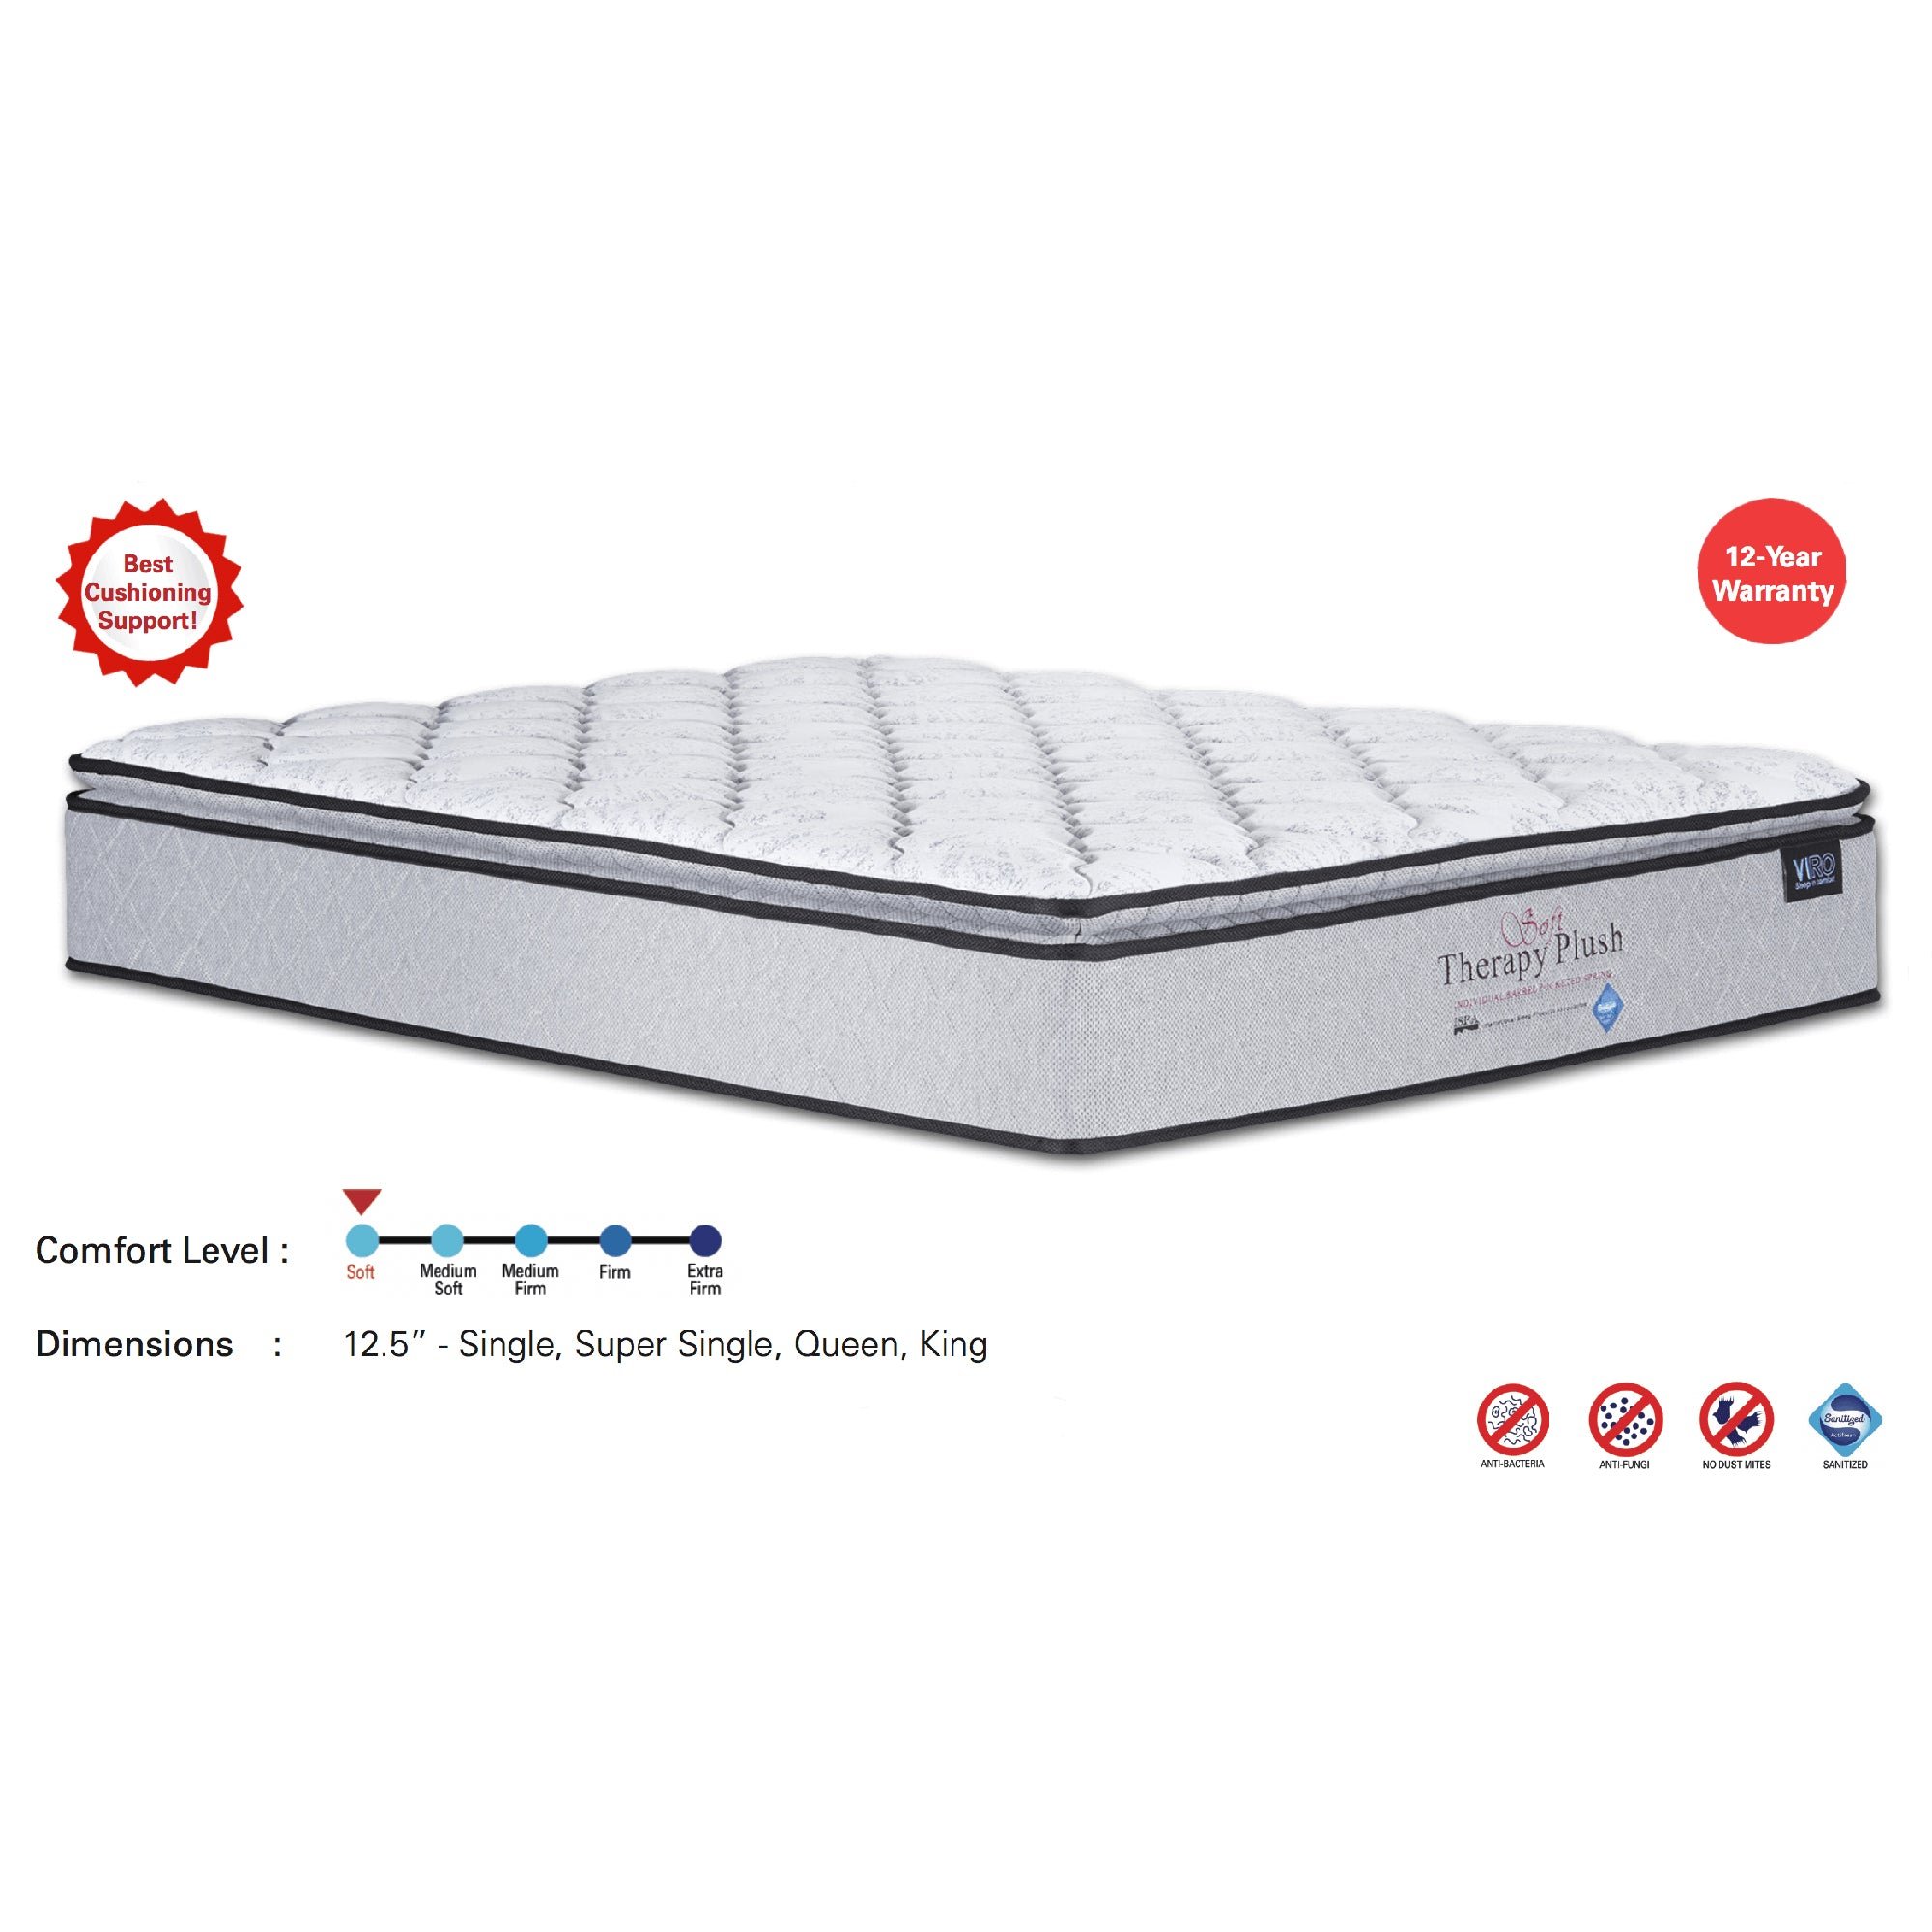 Viro Soft Therapy Plush Pocketed Spring Mattress (6 Feet King Size x 12.5